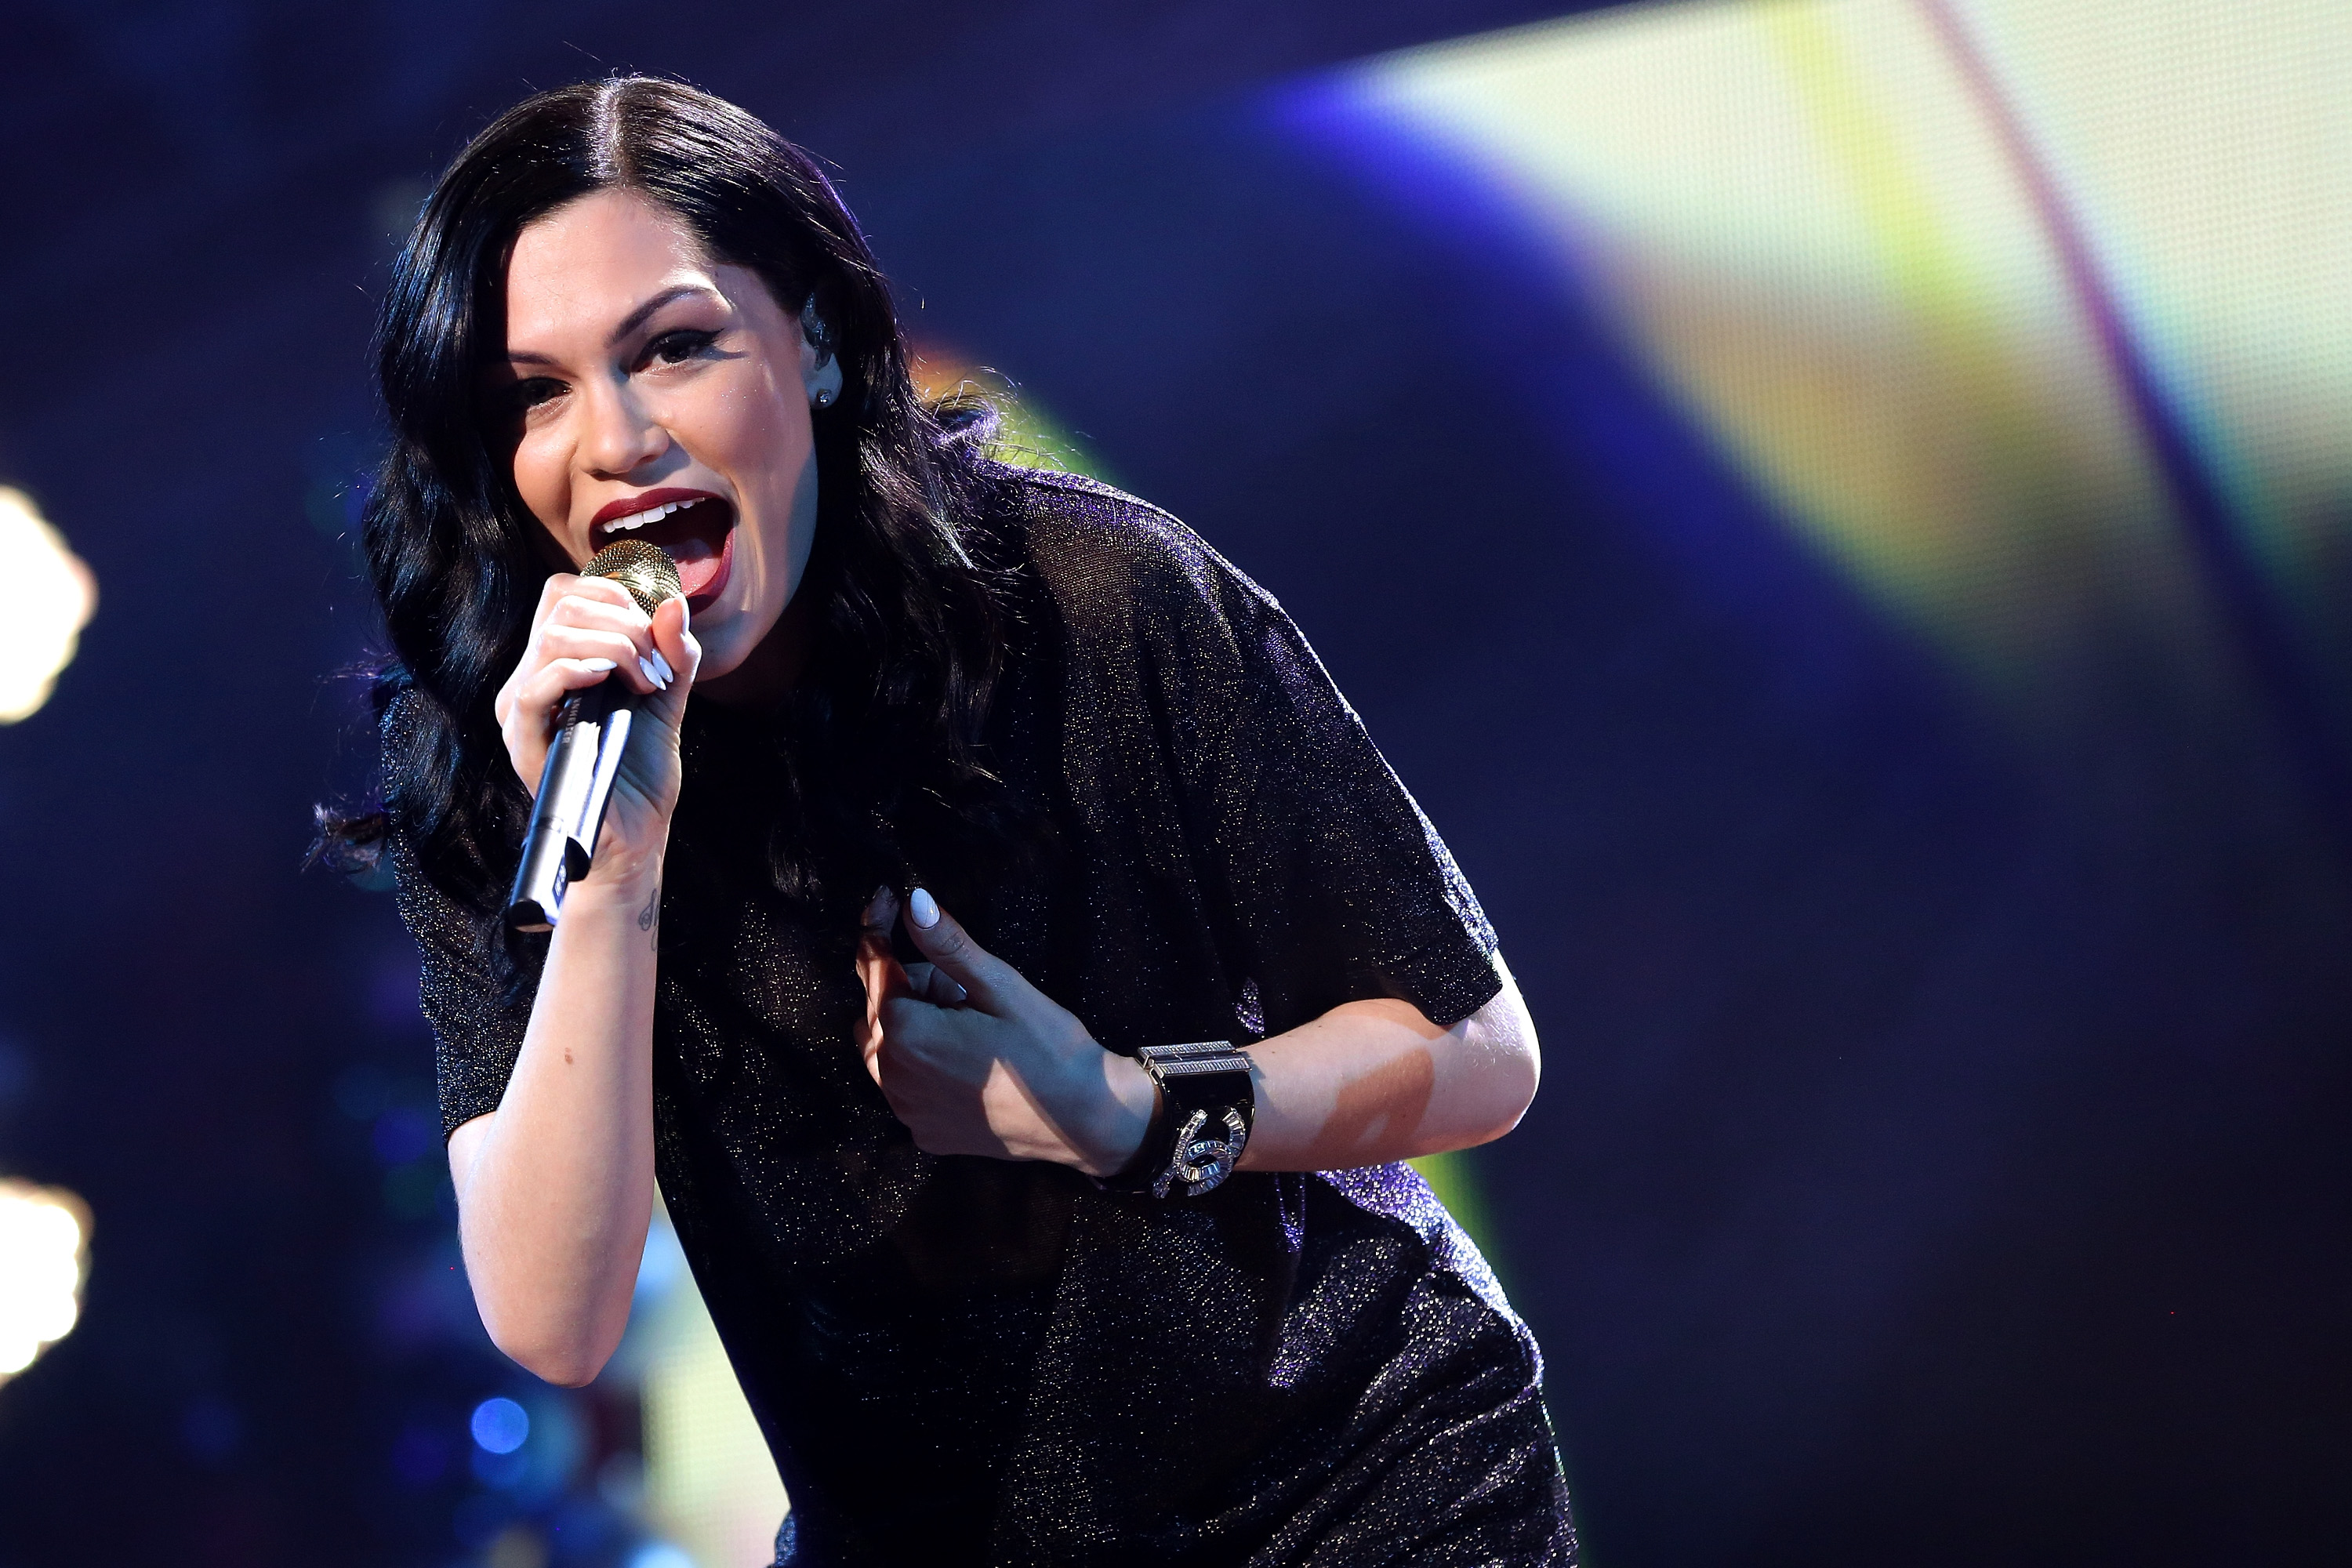 Jessie J performs onstage during 93.3 FLZ's Jingle Ball 2014.